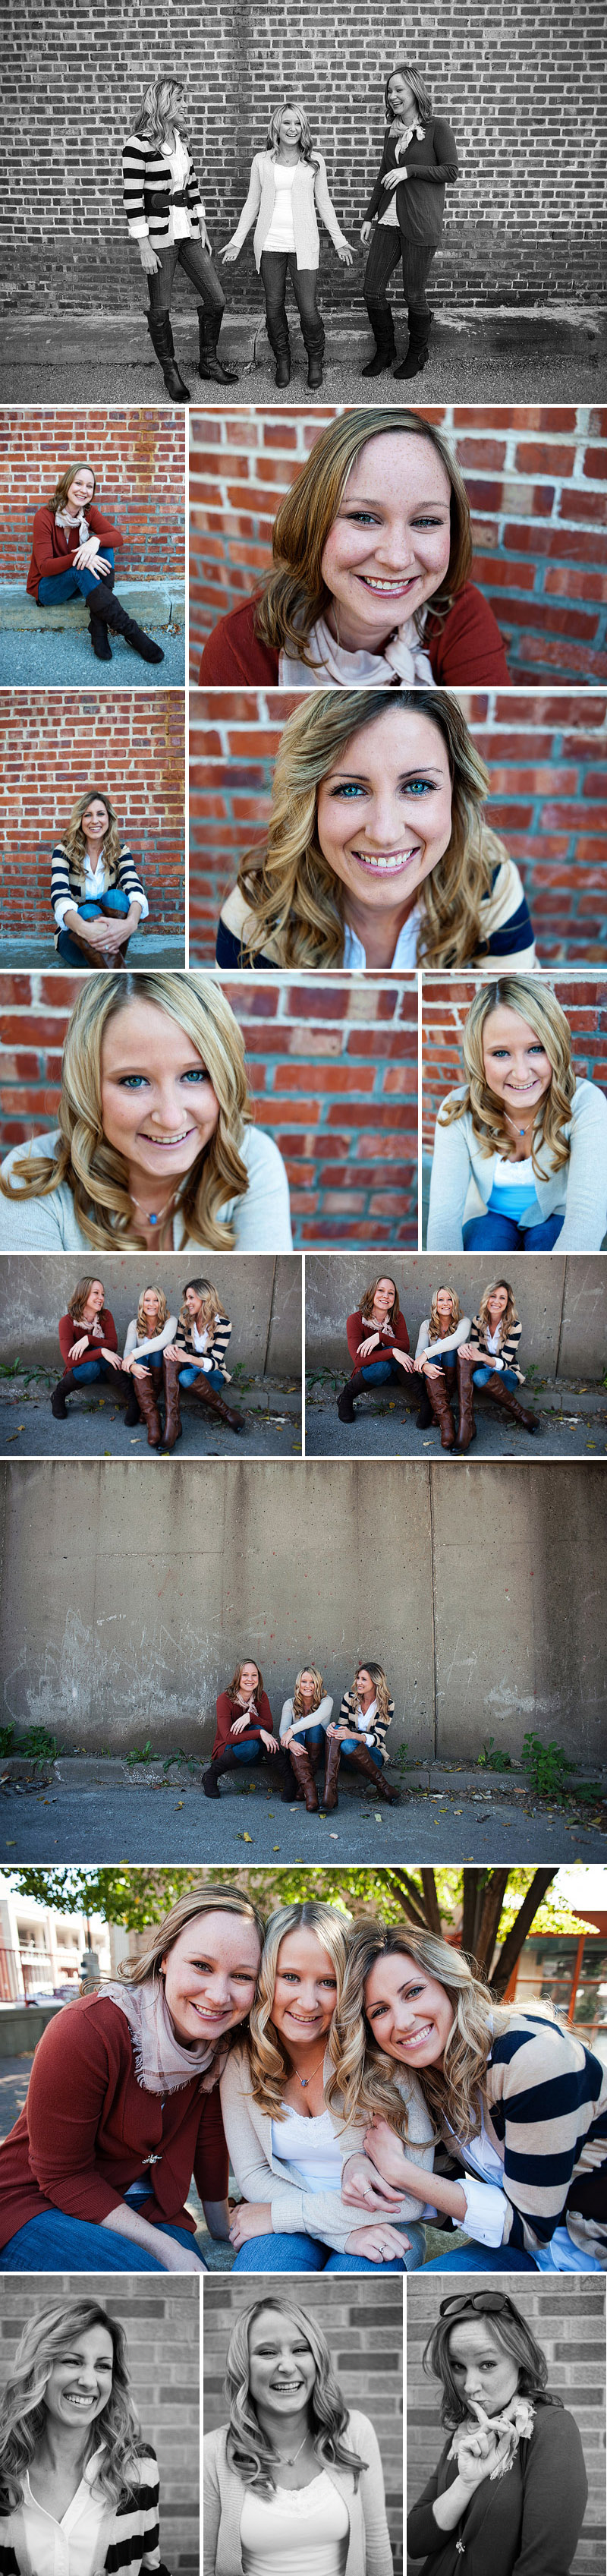 Fun pictures of sisters in Kansas City.